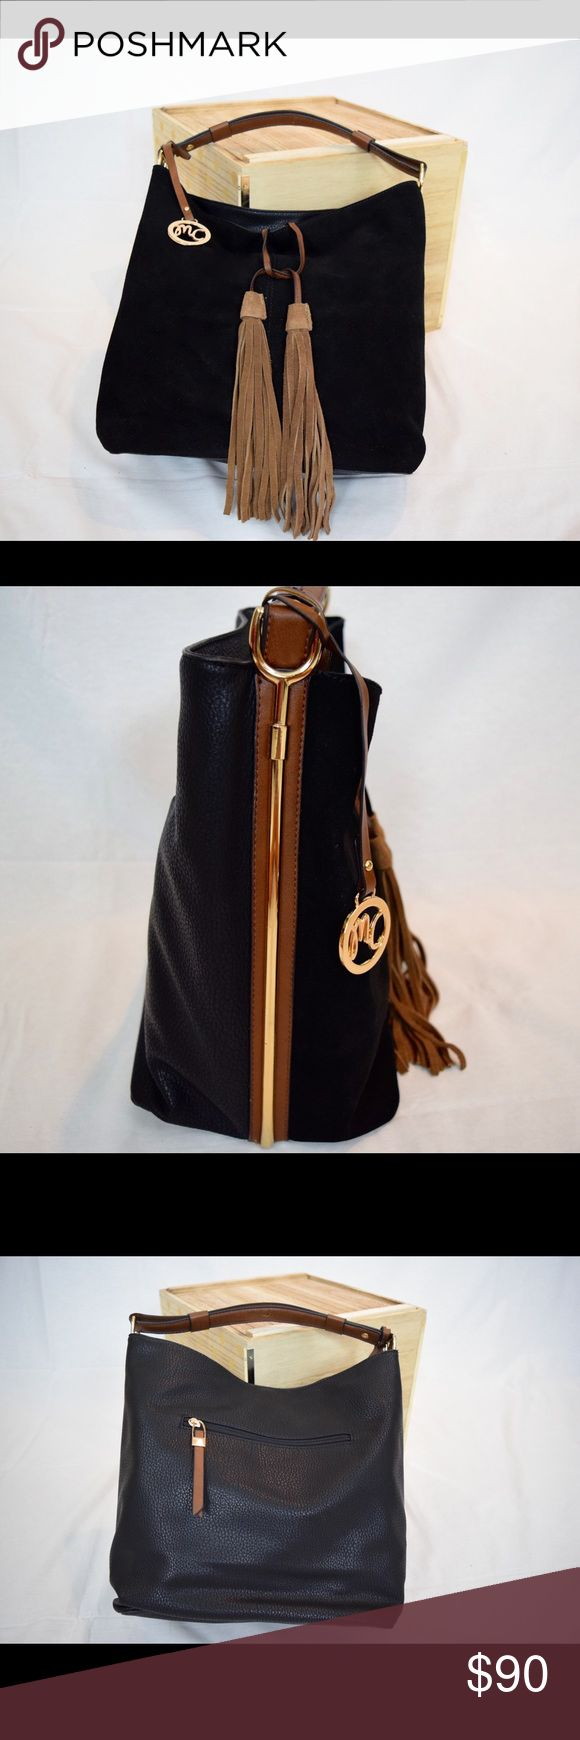 """BLACK VEGAN SUEDE LEATHER TOTE/SHOULDER HANDBAG This classy purse features high quality vegan suede leather with fabric lining, classic gold trim, and tan leather tassel. Superb quality. ❤️  -Fabric lining (with inside pockets) -Strap is adjustable, tassels are 9""""  -Base is 11.5""""x7.5"""", 12"""" in height, 14"""" wide at top, weight 1.3 lbs Cindy's Faves (Miss Caprice) Bags Shoulder Bags"""